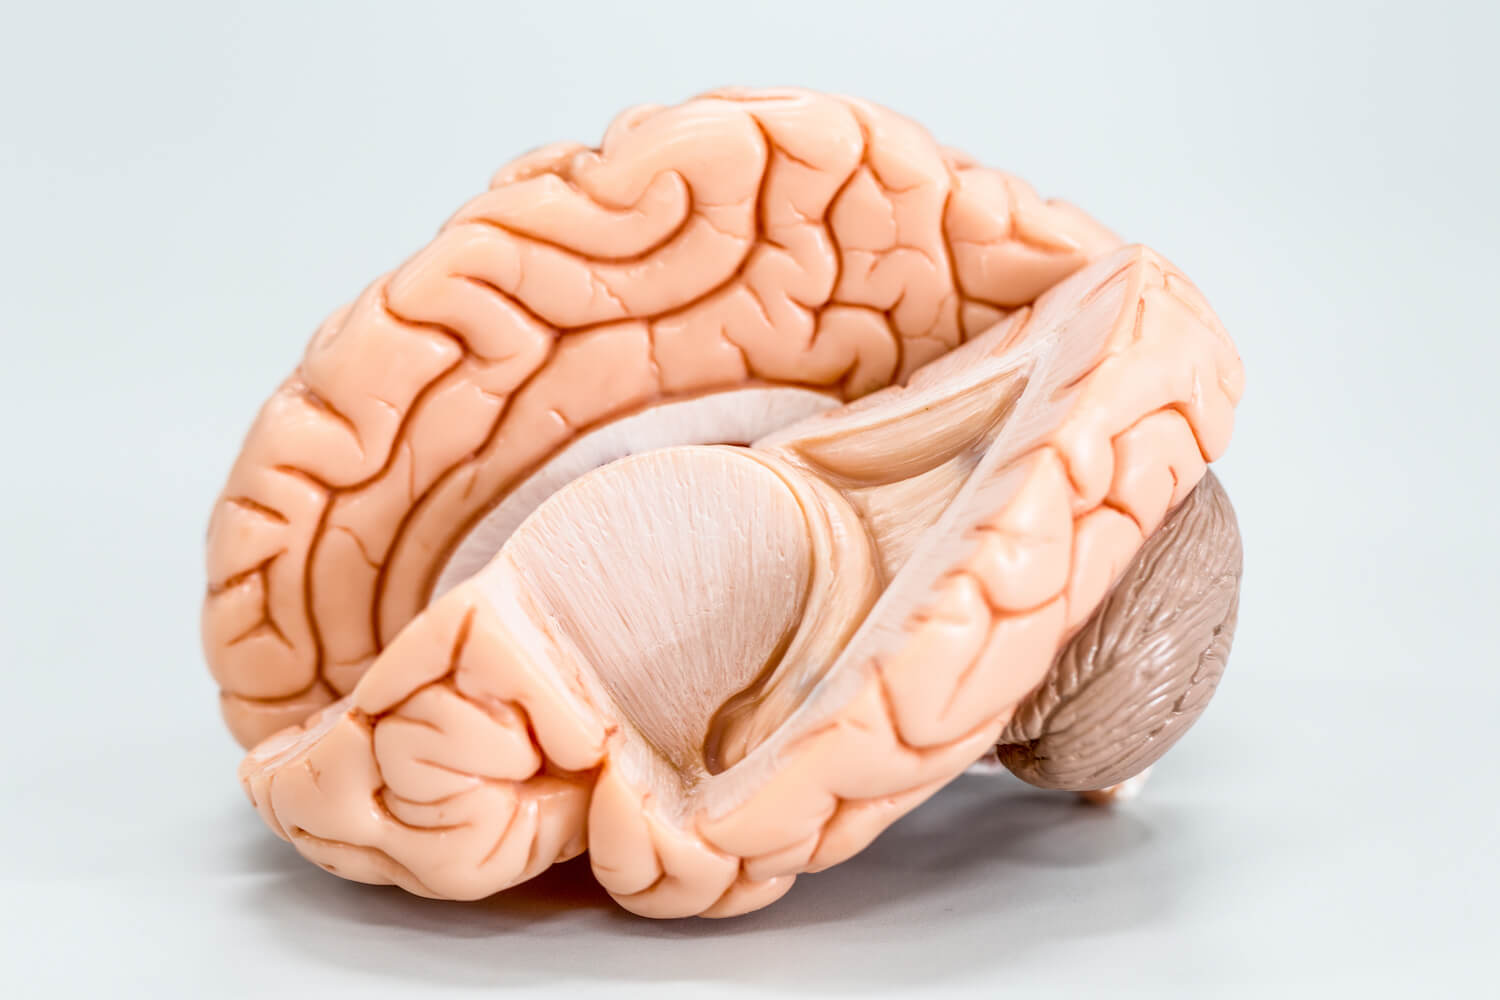 Can You Prevent Alzheimer's With a Vegan Diet?